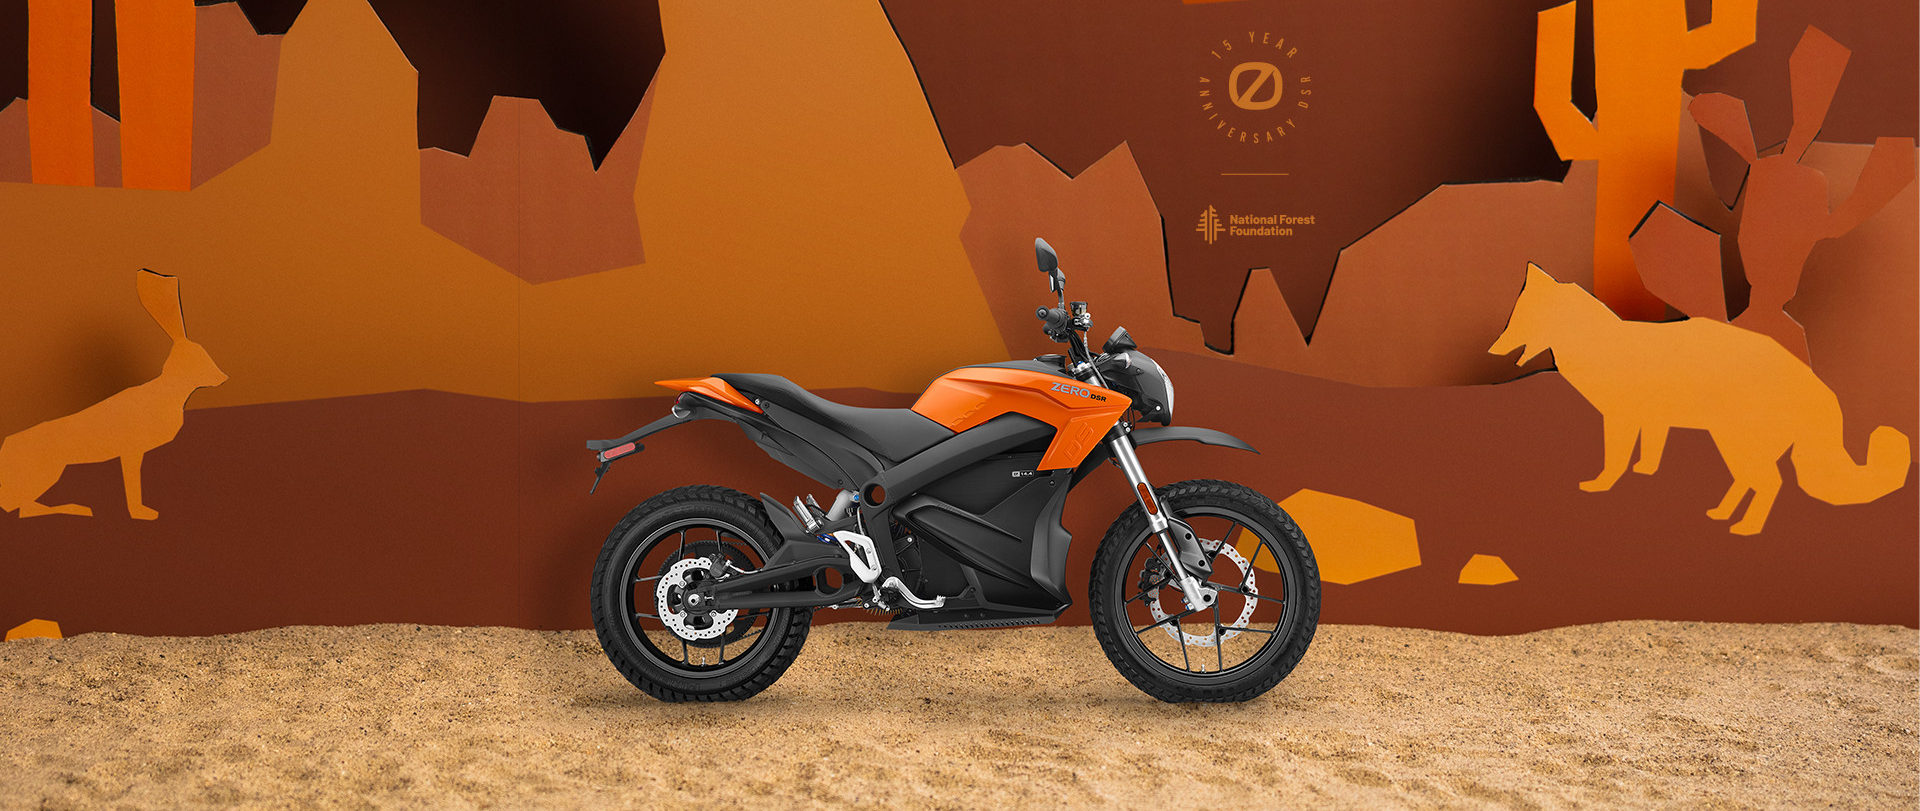 A 15th anniversary limited-edition Zero DSR electric motorcycle in Orange. Photo courtesy Zero Motorcycles.